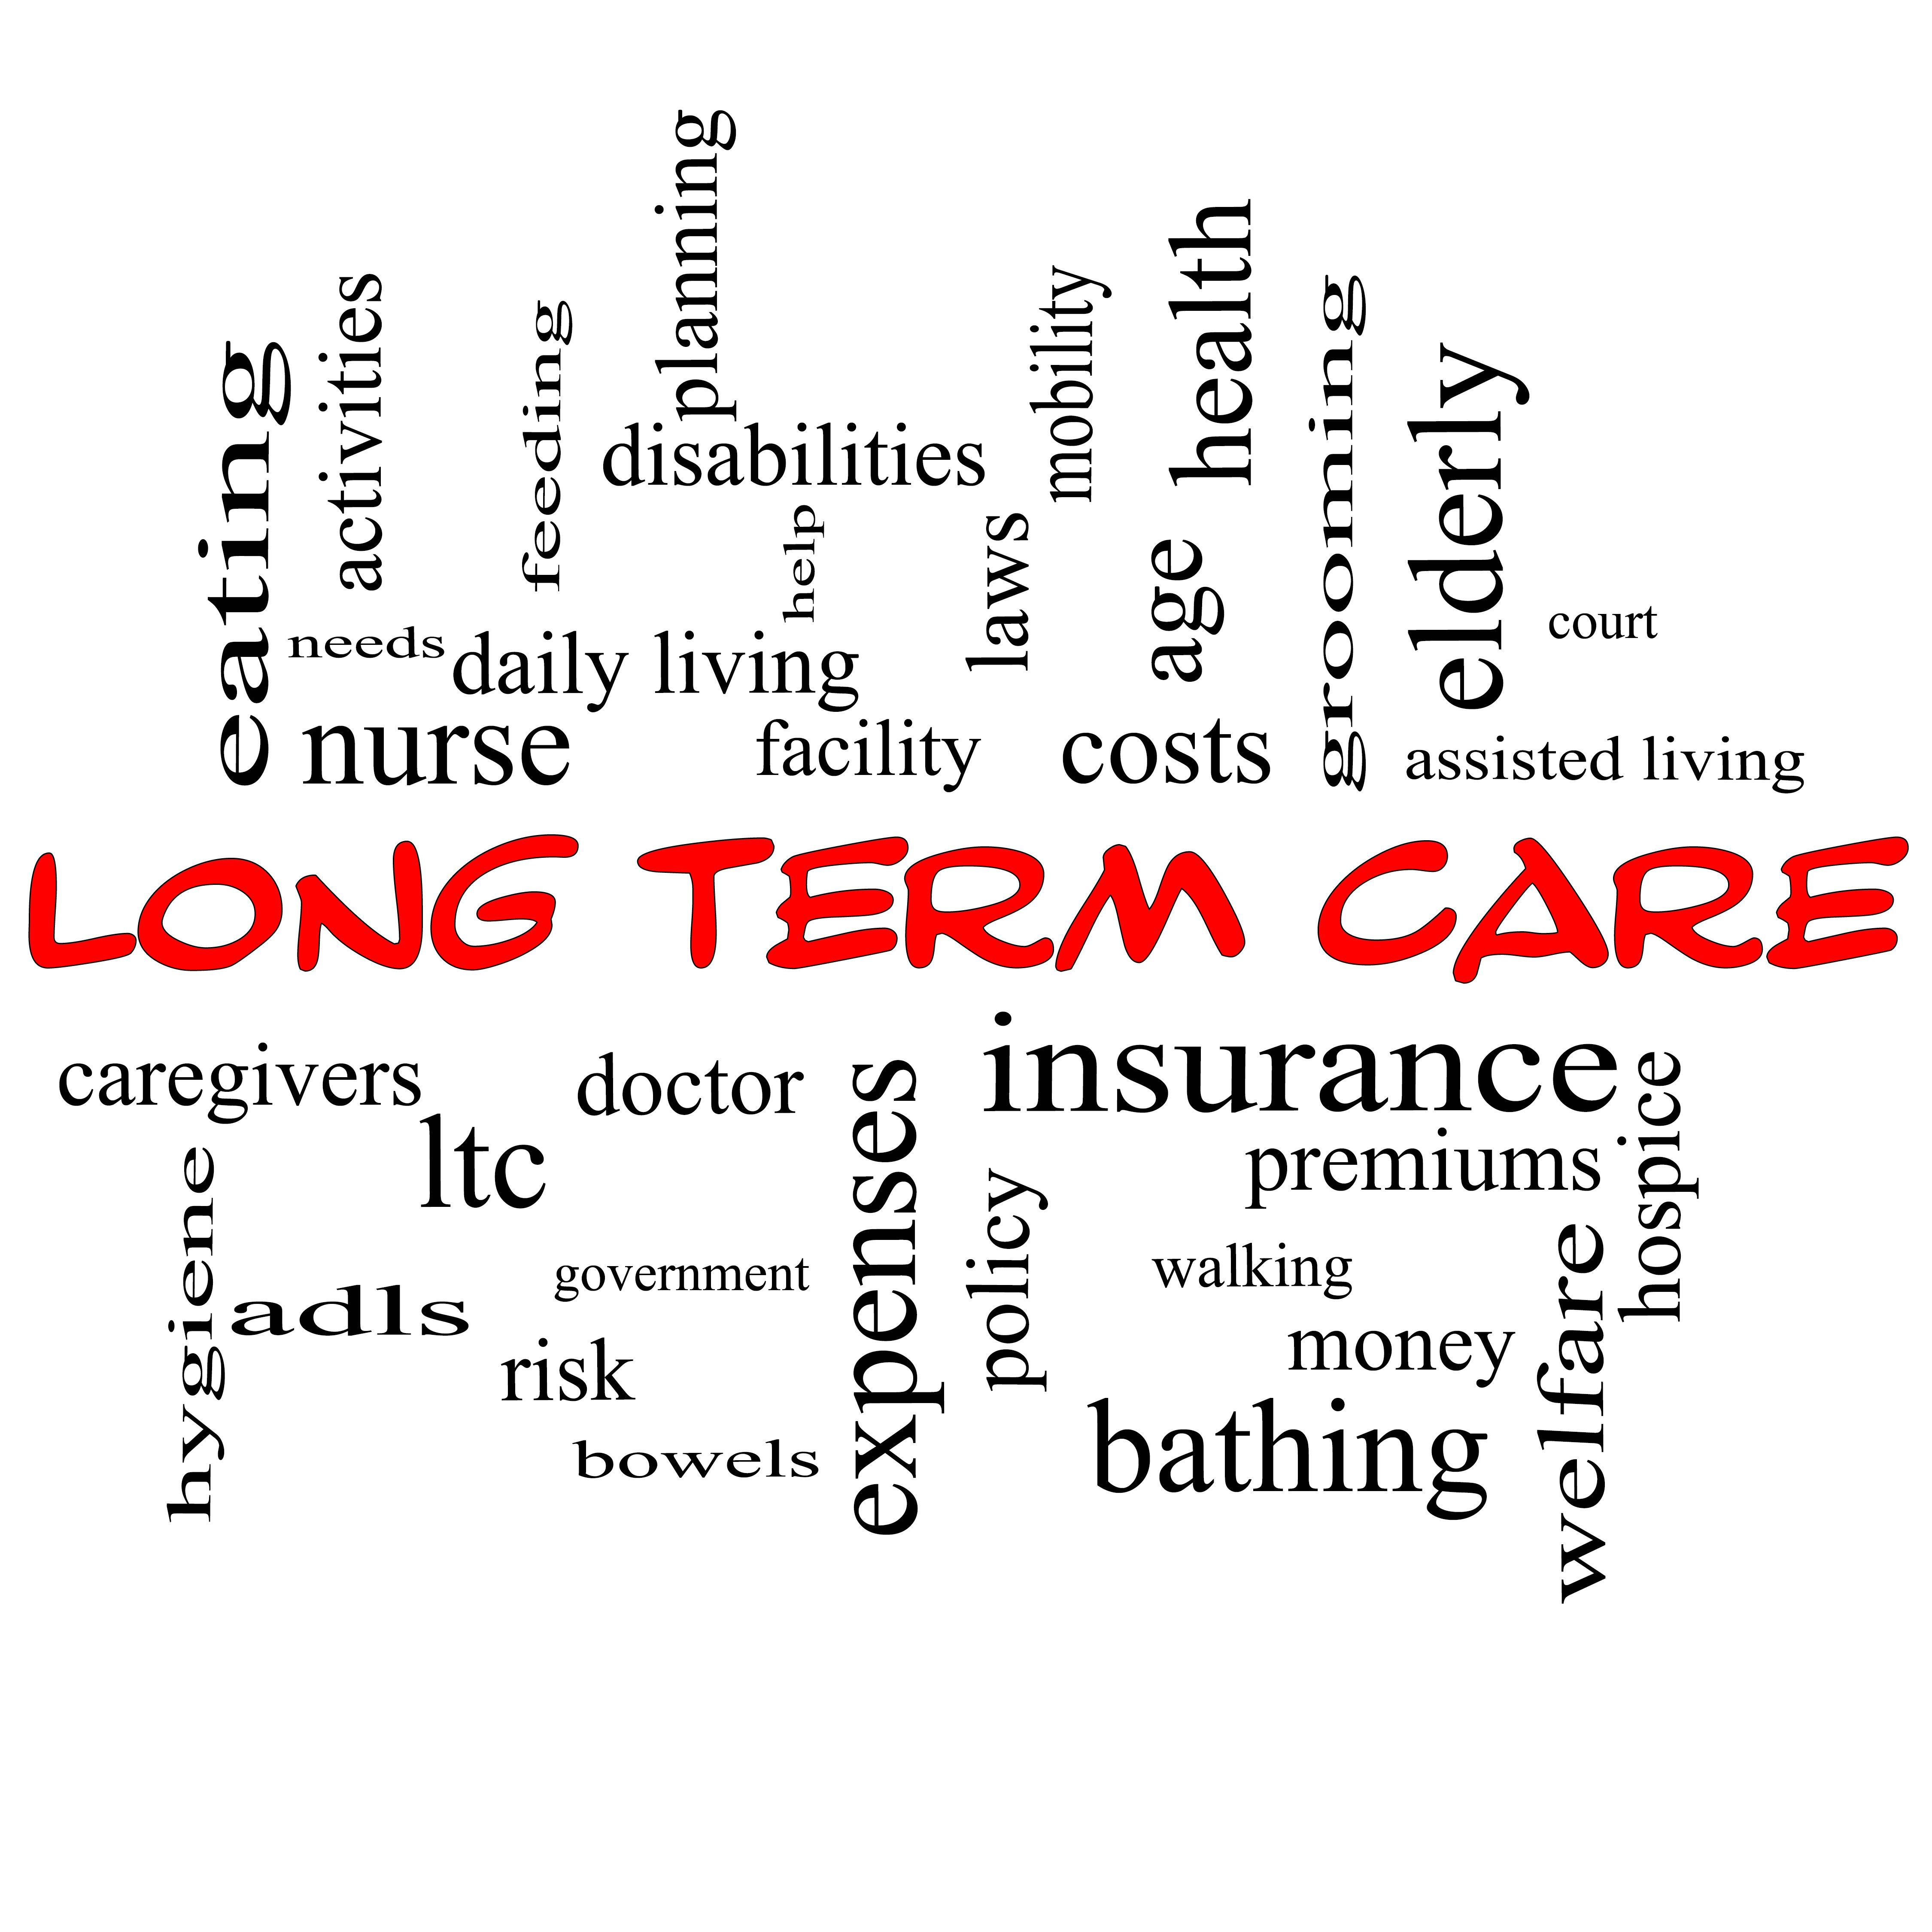 Study Reveals That Families Bear The Burden Of Long Term Care